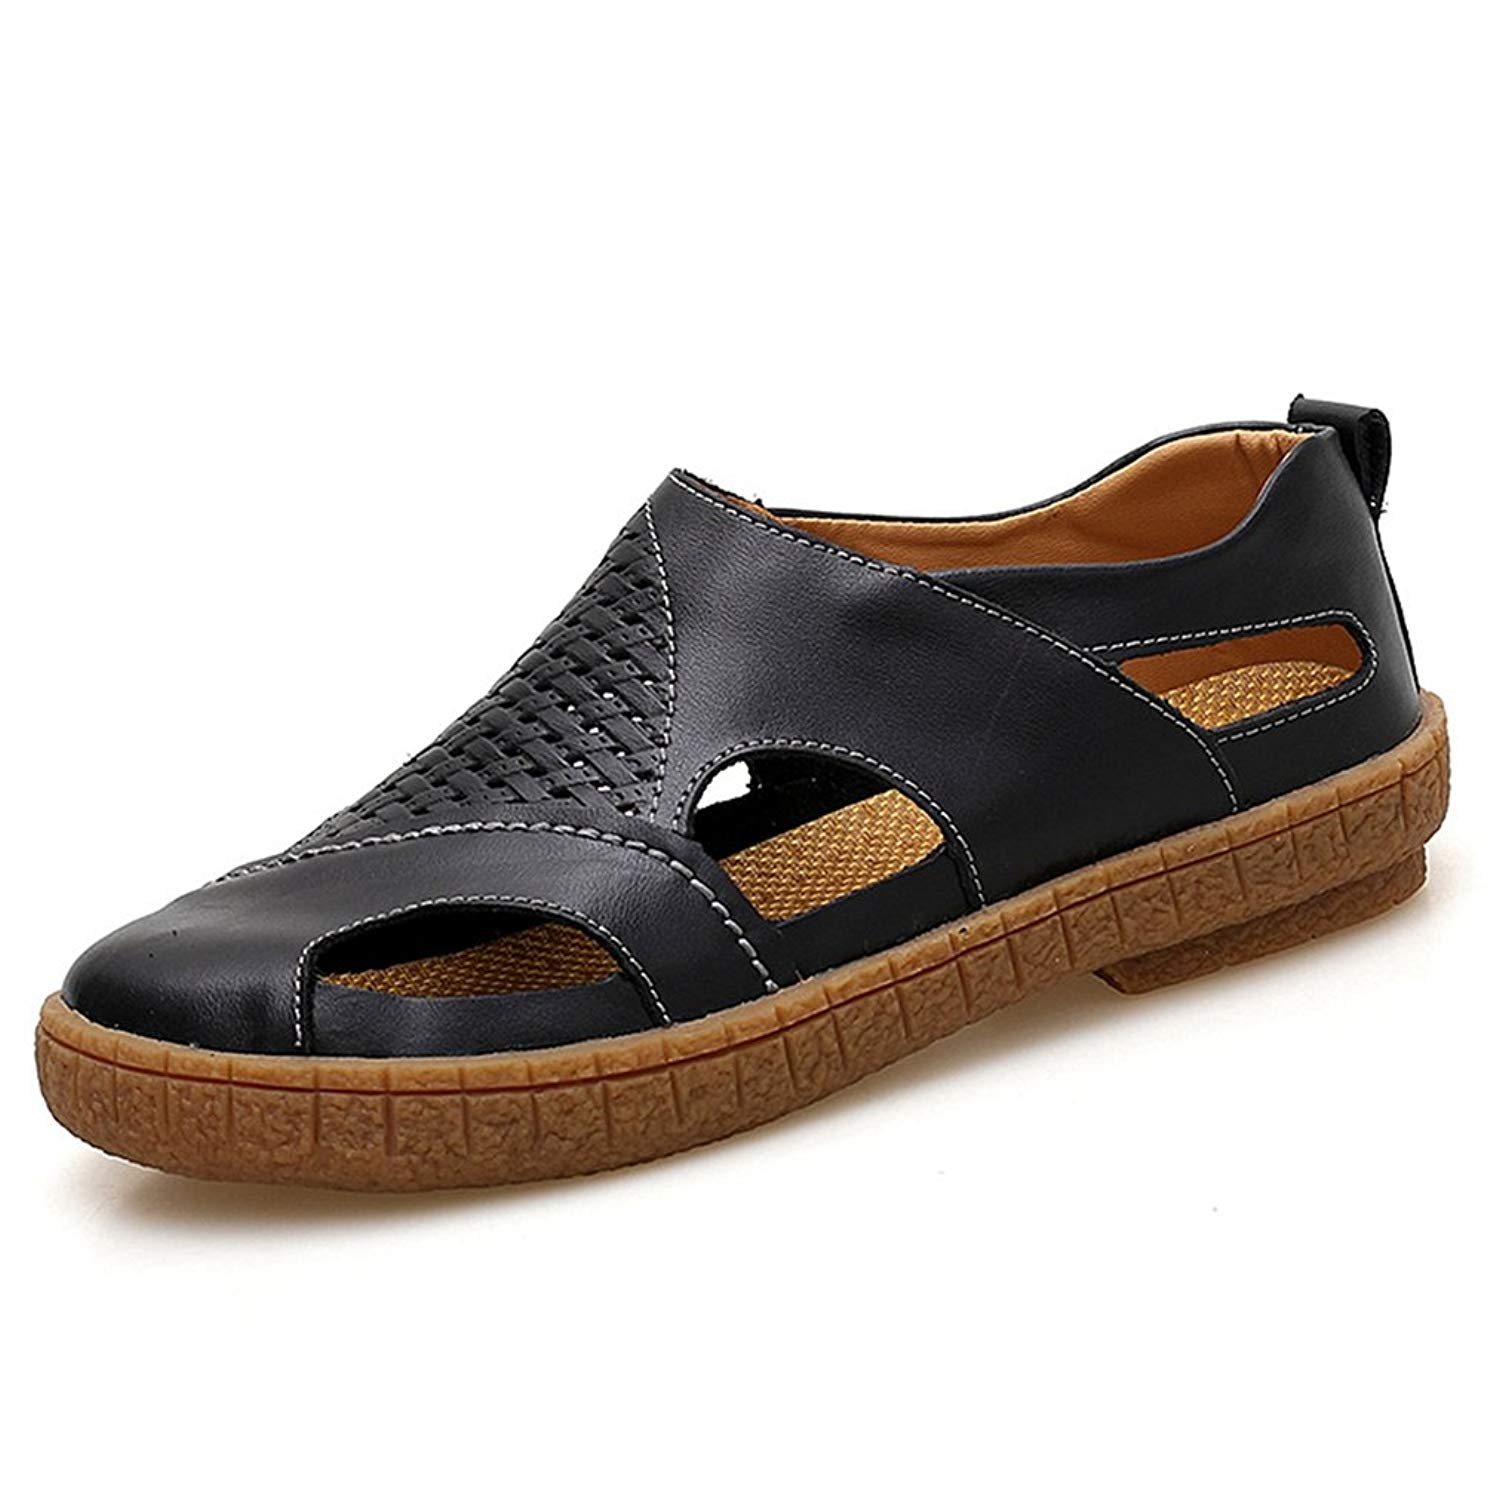 T-JULY Mens Driving Moccasins Fashion Slip On Loafers Comfortable Casual Slip on Slippers for Summer